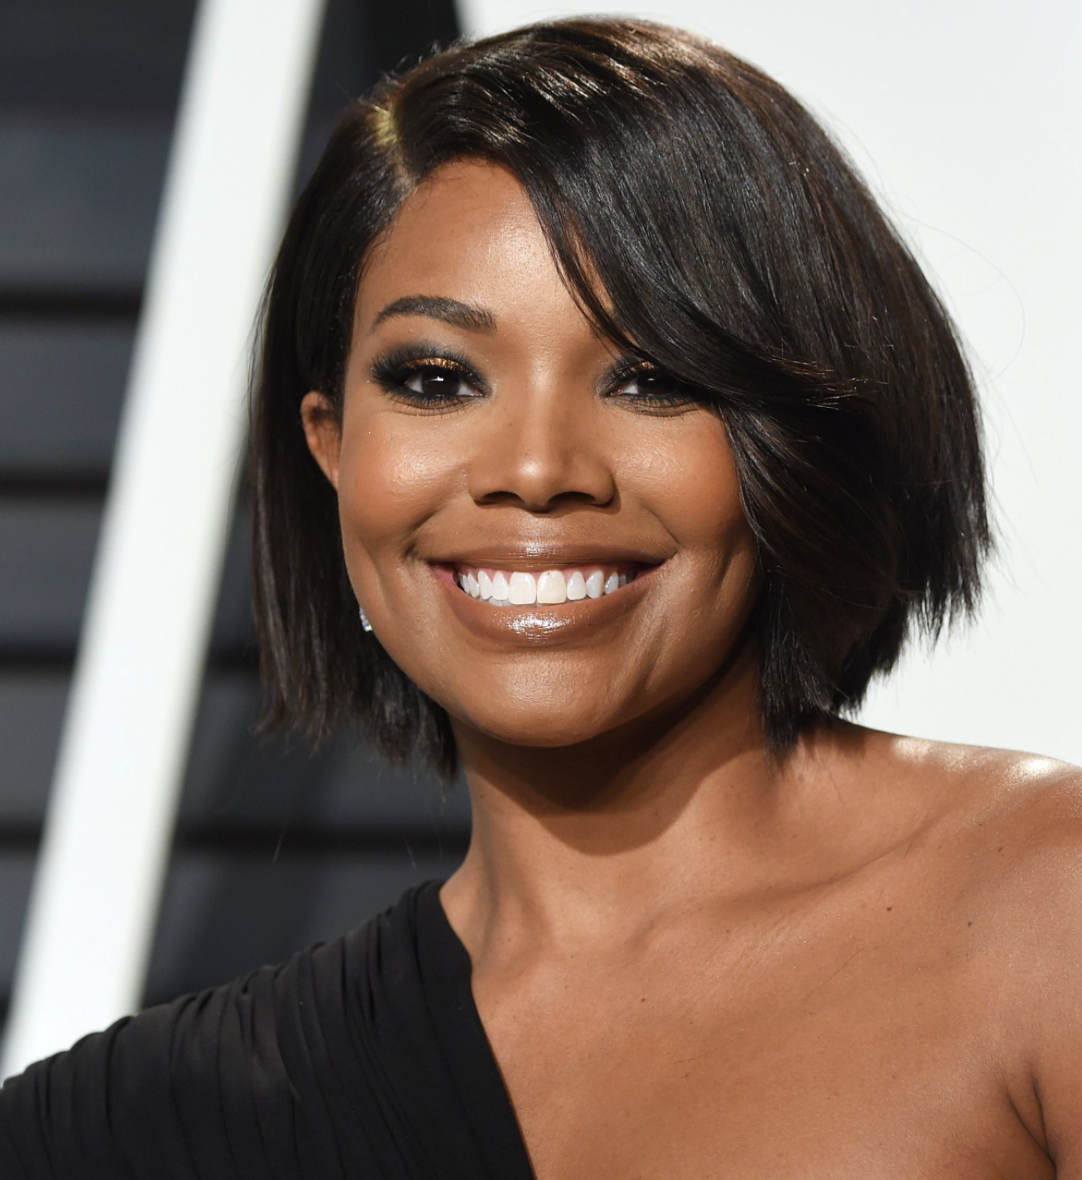 Hair with Bold heavy lines, bobs and wedges!  image courtesy of: refinery29.com